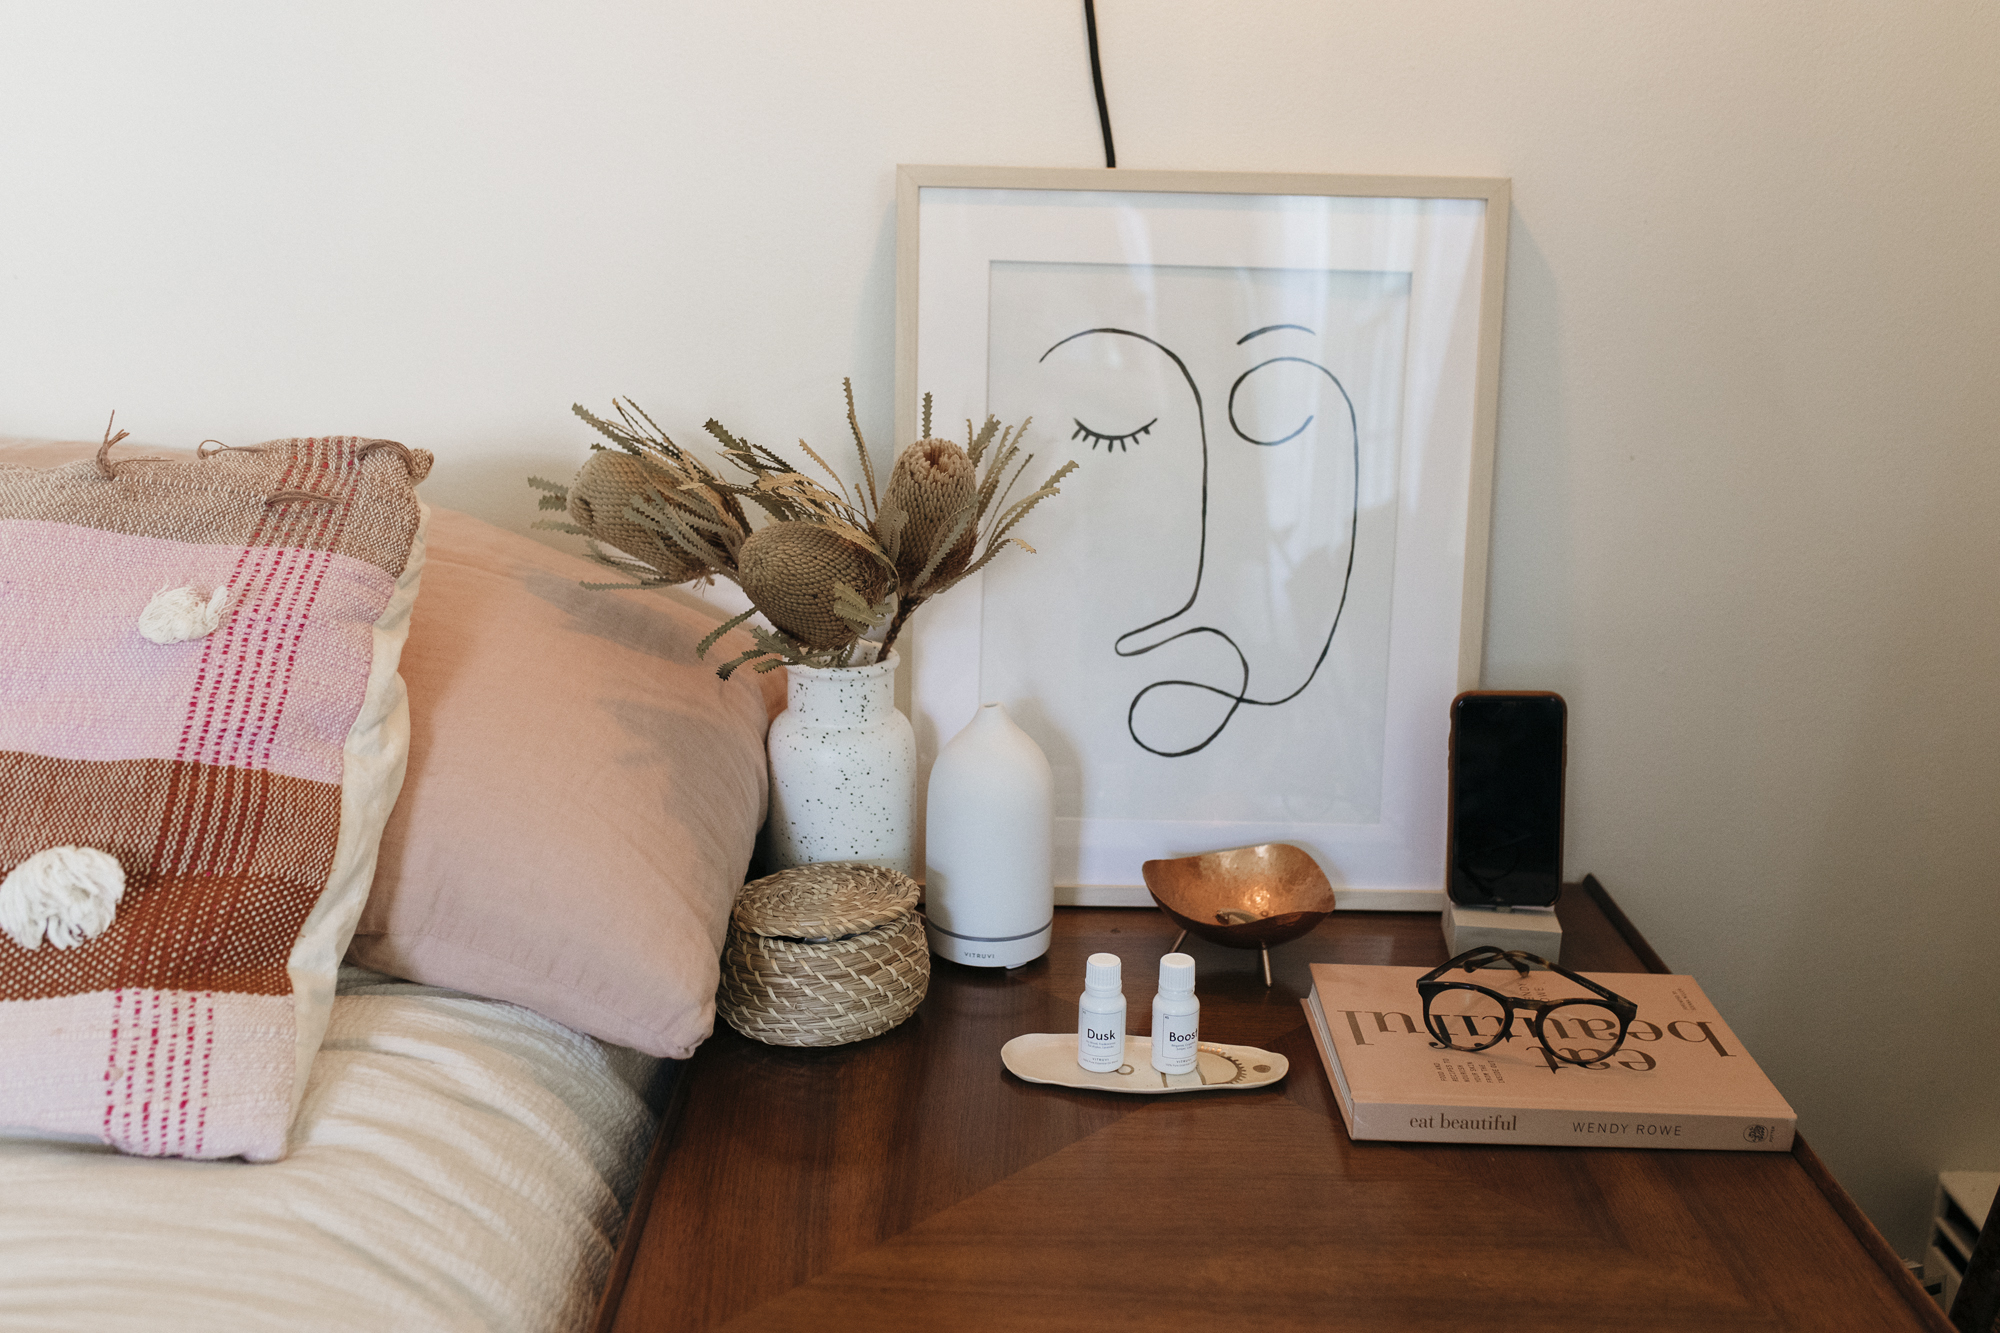 Night stand table decoration and bedroom decoration ideas from creative lifestyle blogger emily r hess.